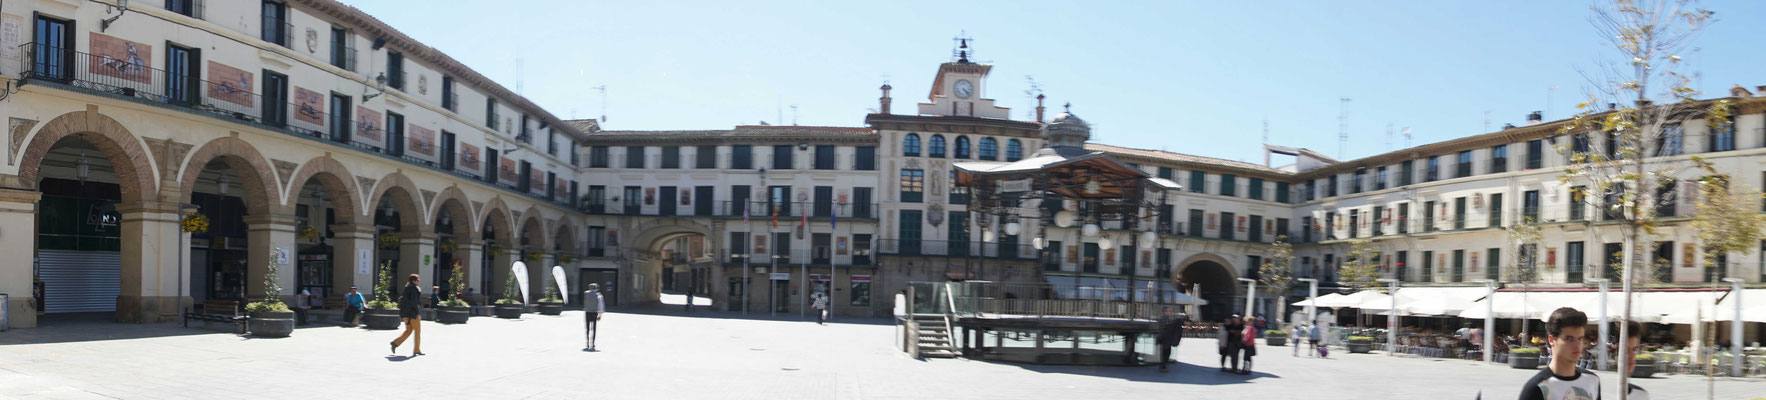 Plaza Mayor in Tudela...